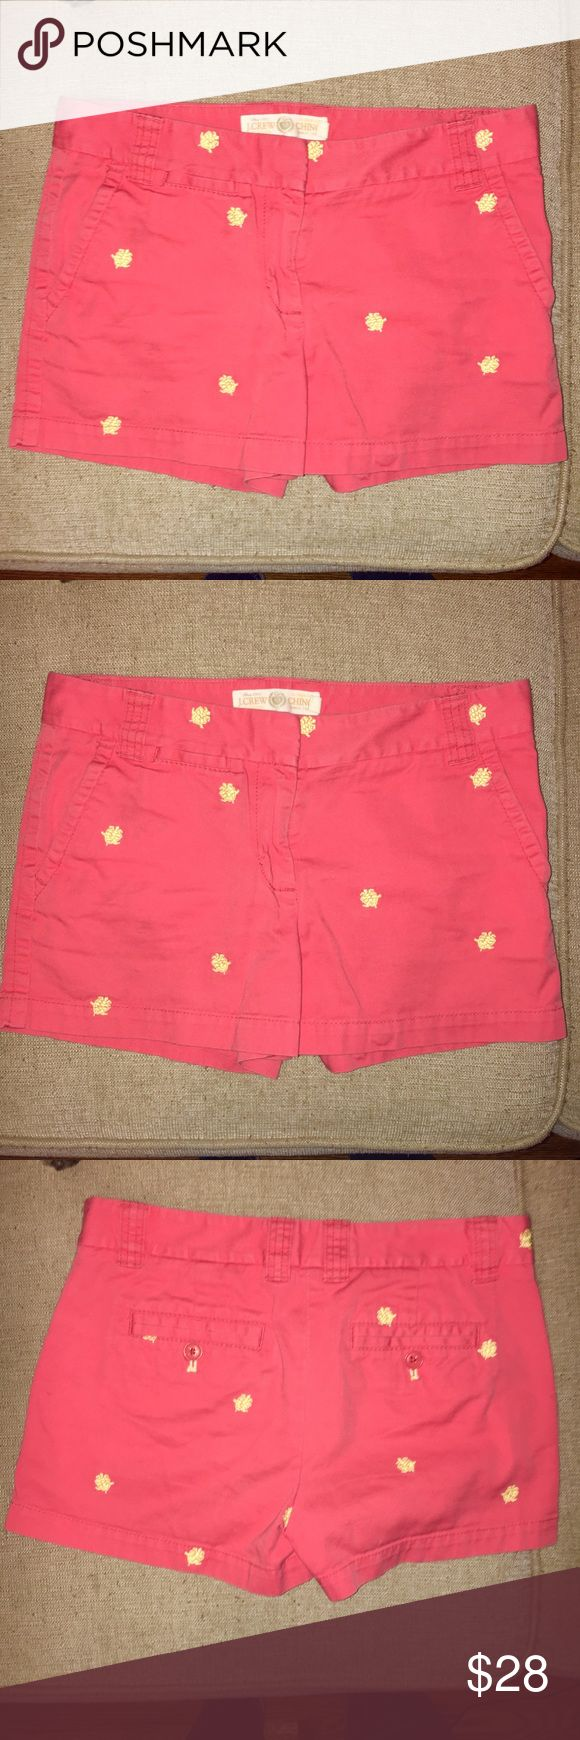 "J. Crew 3"" Chino Shorts J. Crew 3"" chino shorts. Coral with yellow turtles. Like new! Fits true to size. J. Crew Shorts"